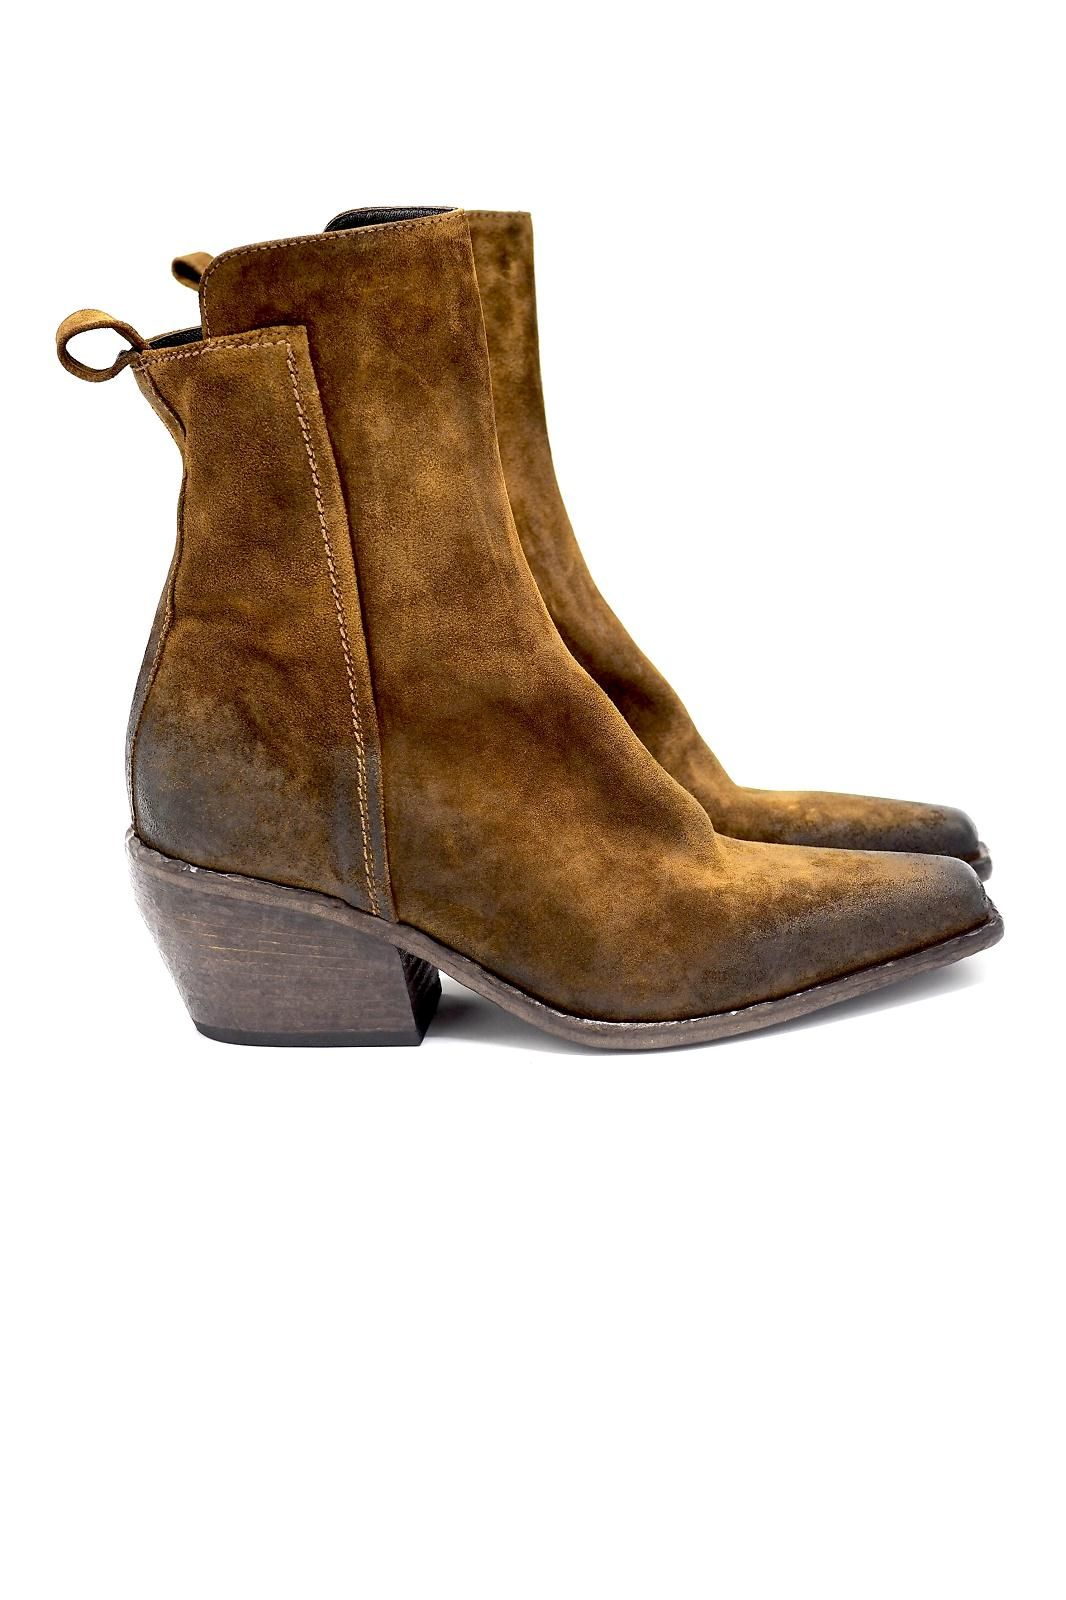 Strategia boots Brun femmes (STRA-Santiag  - 2660 Santiag cognac) - Marine | Much more than shoes